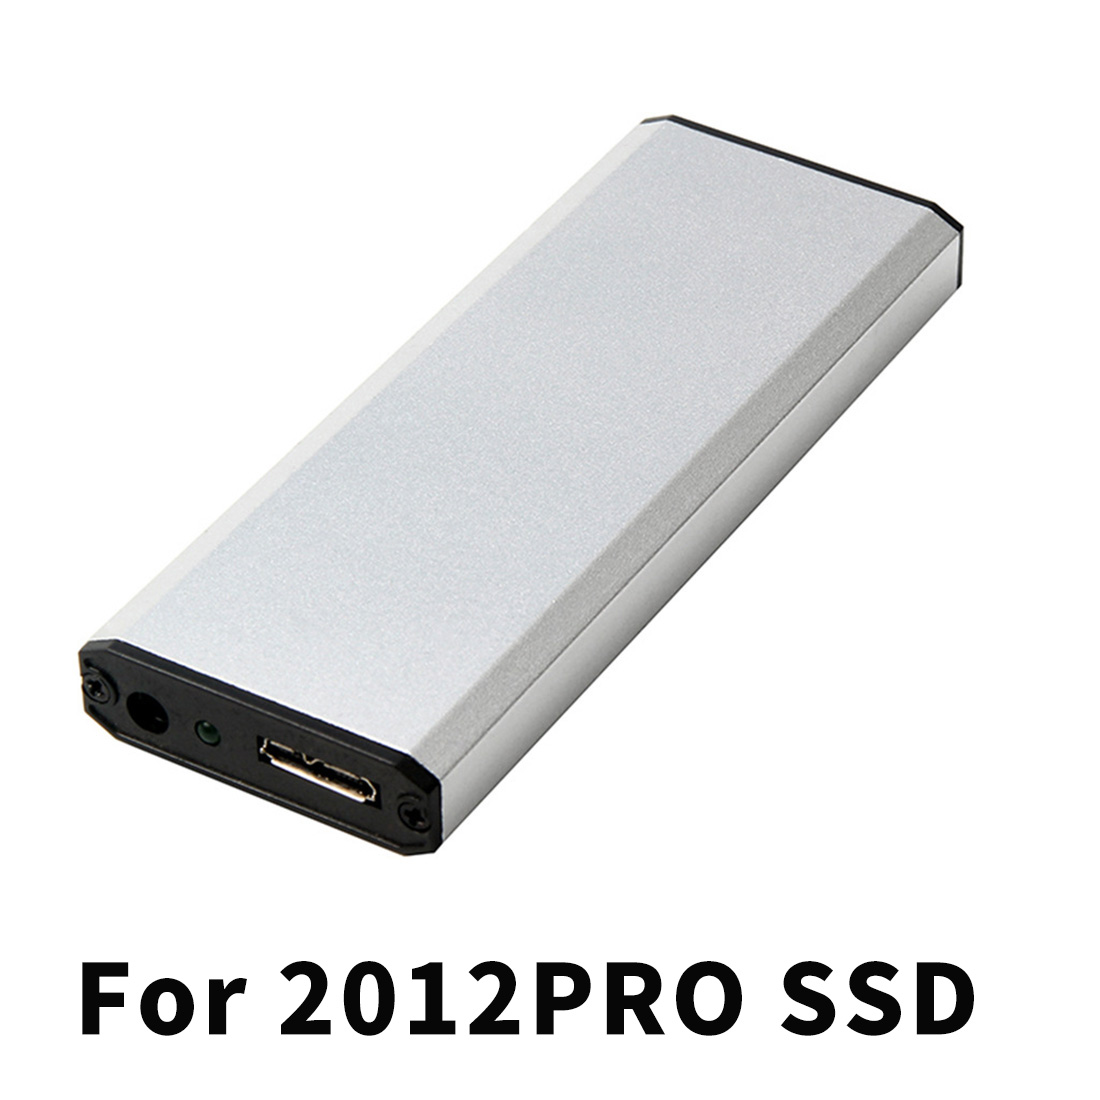 XT-XINTE SSD Portable Case USB 3.0 To 17+7 Pin Slot HDD Enclosure For 2012 MACBOOK PRO RETINA A1425 A1398 MC975 MC976 MD213